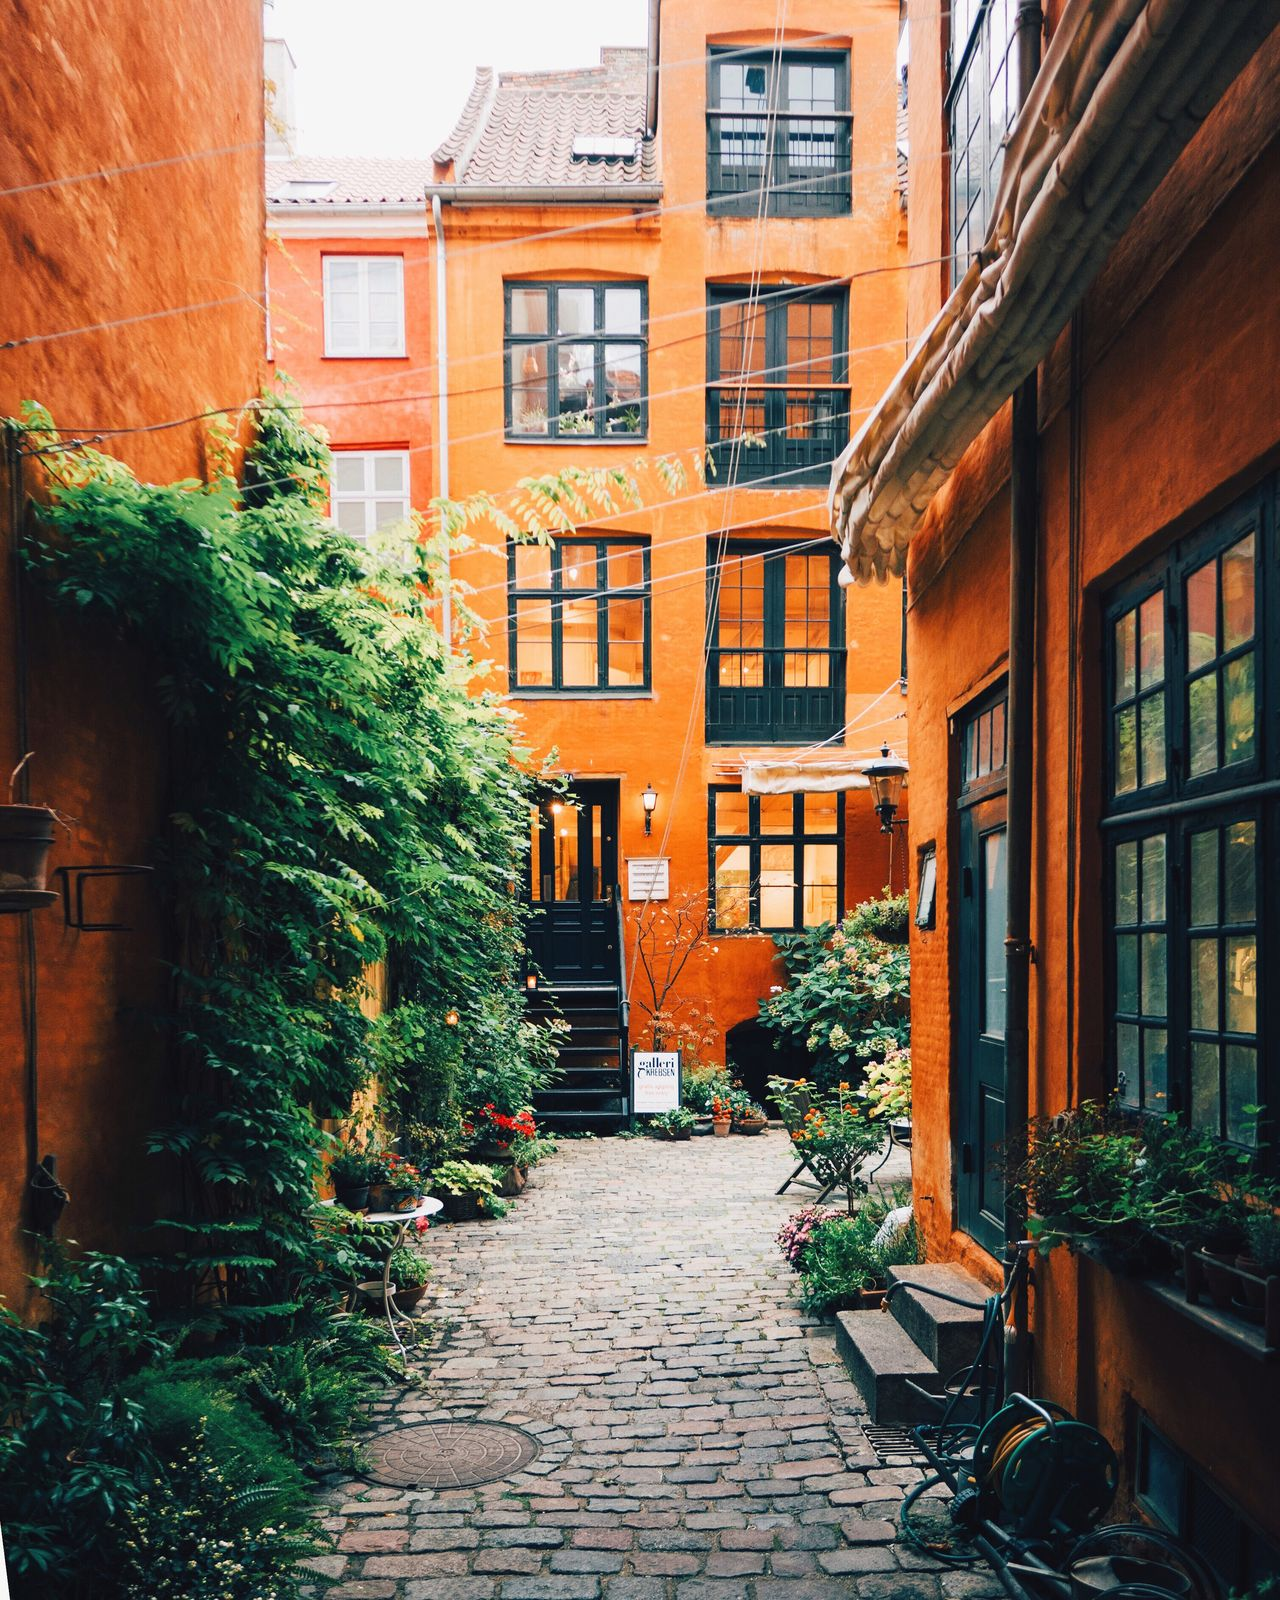 backyard. end of the series. #Copenhagen #DanishForLife #visitcopenhagen The Week On EyeEm